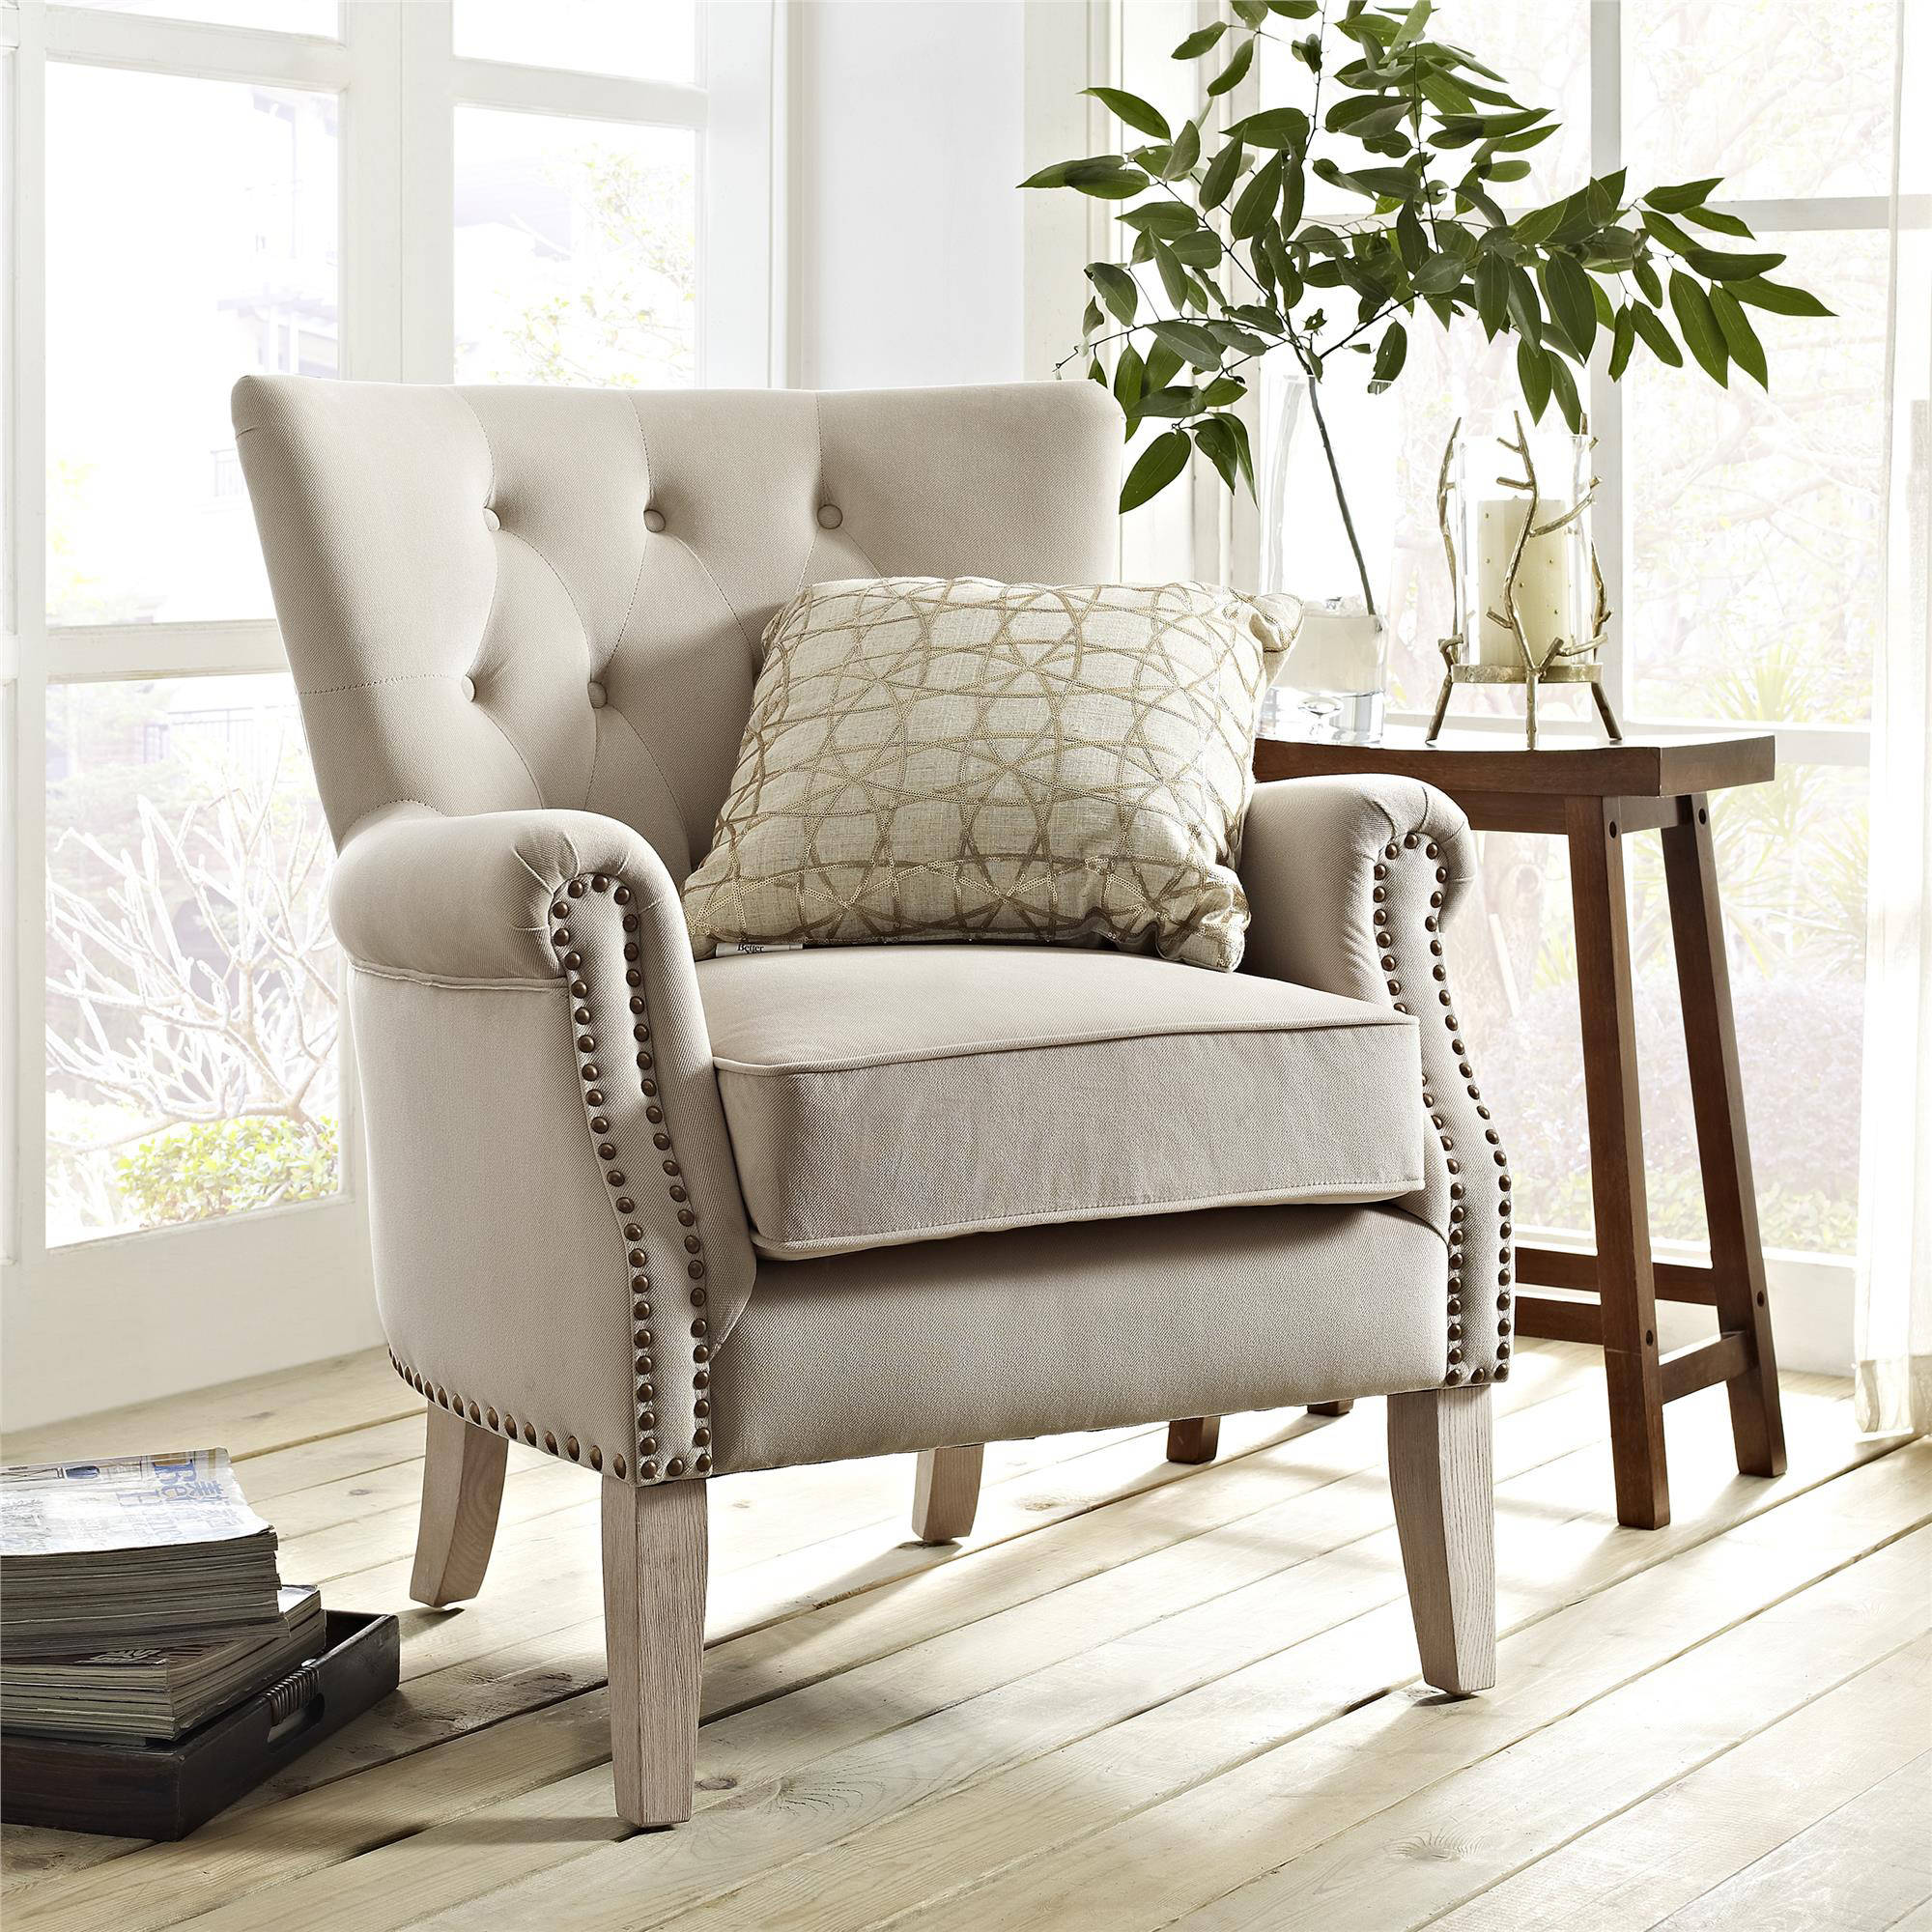 Sofa Mart Accent Chairs: Better Homes And Gardens Rolled Arm Accent Chair, Multiple